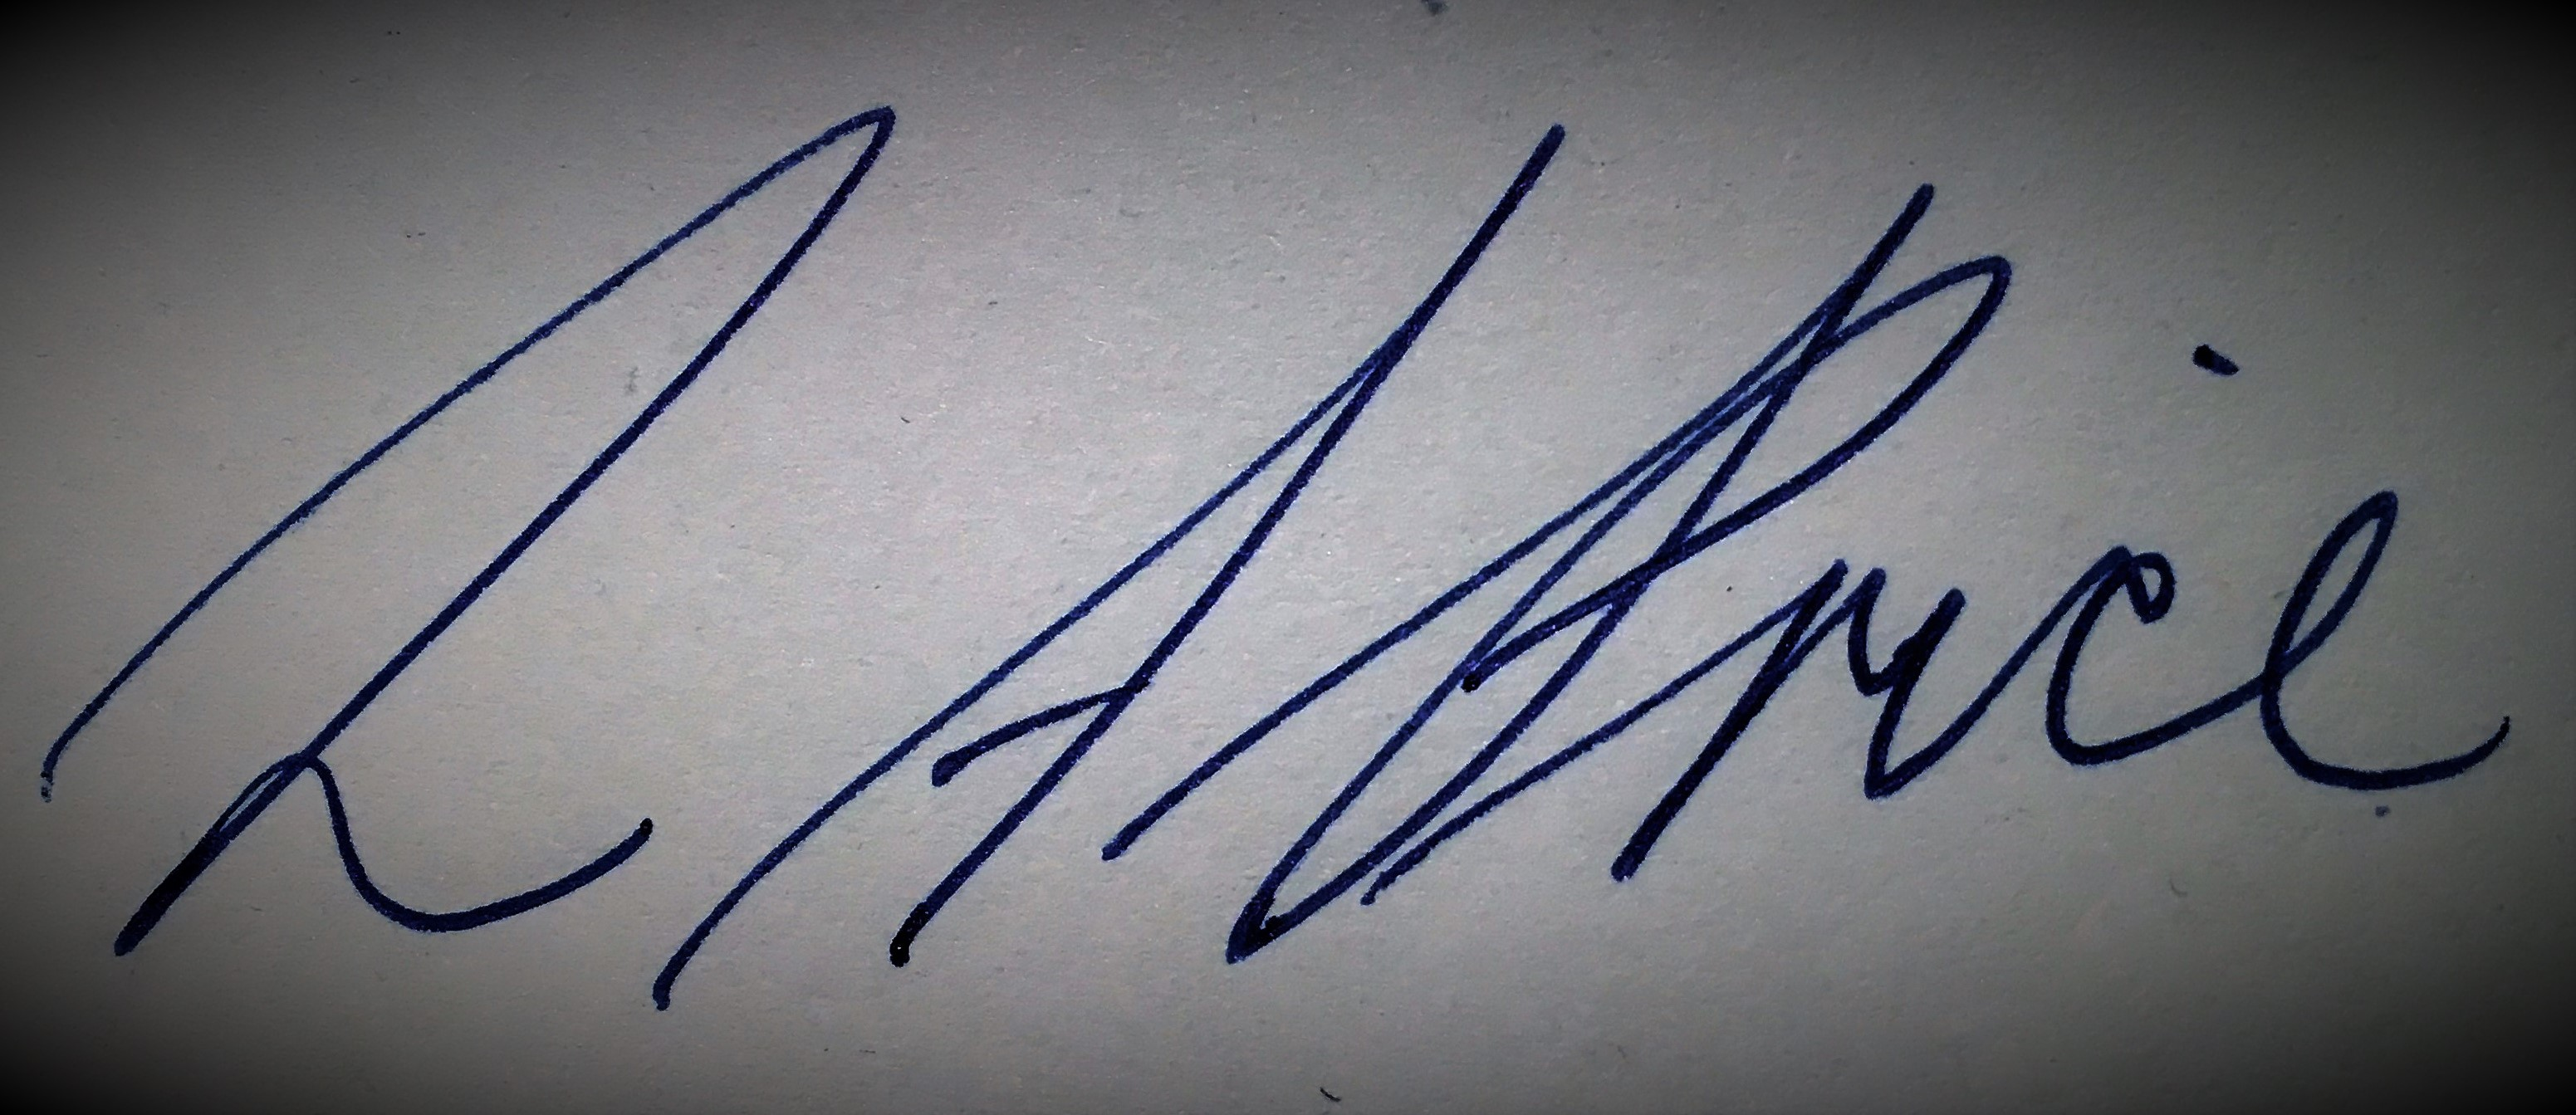 Lilli-anne Price's Signature